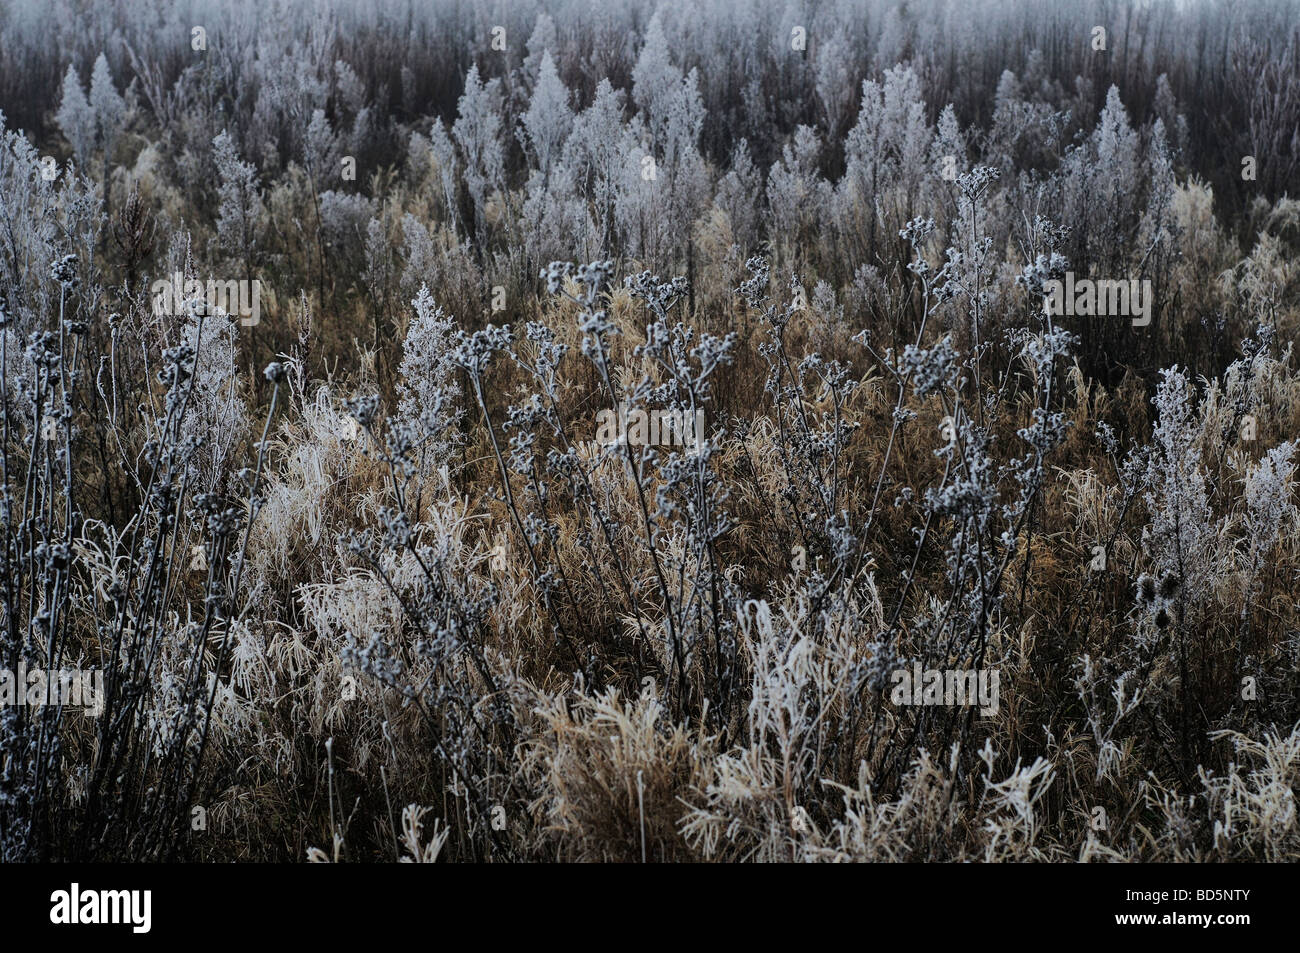 Vegetation covered in frost in Northern France - Stock Image